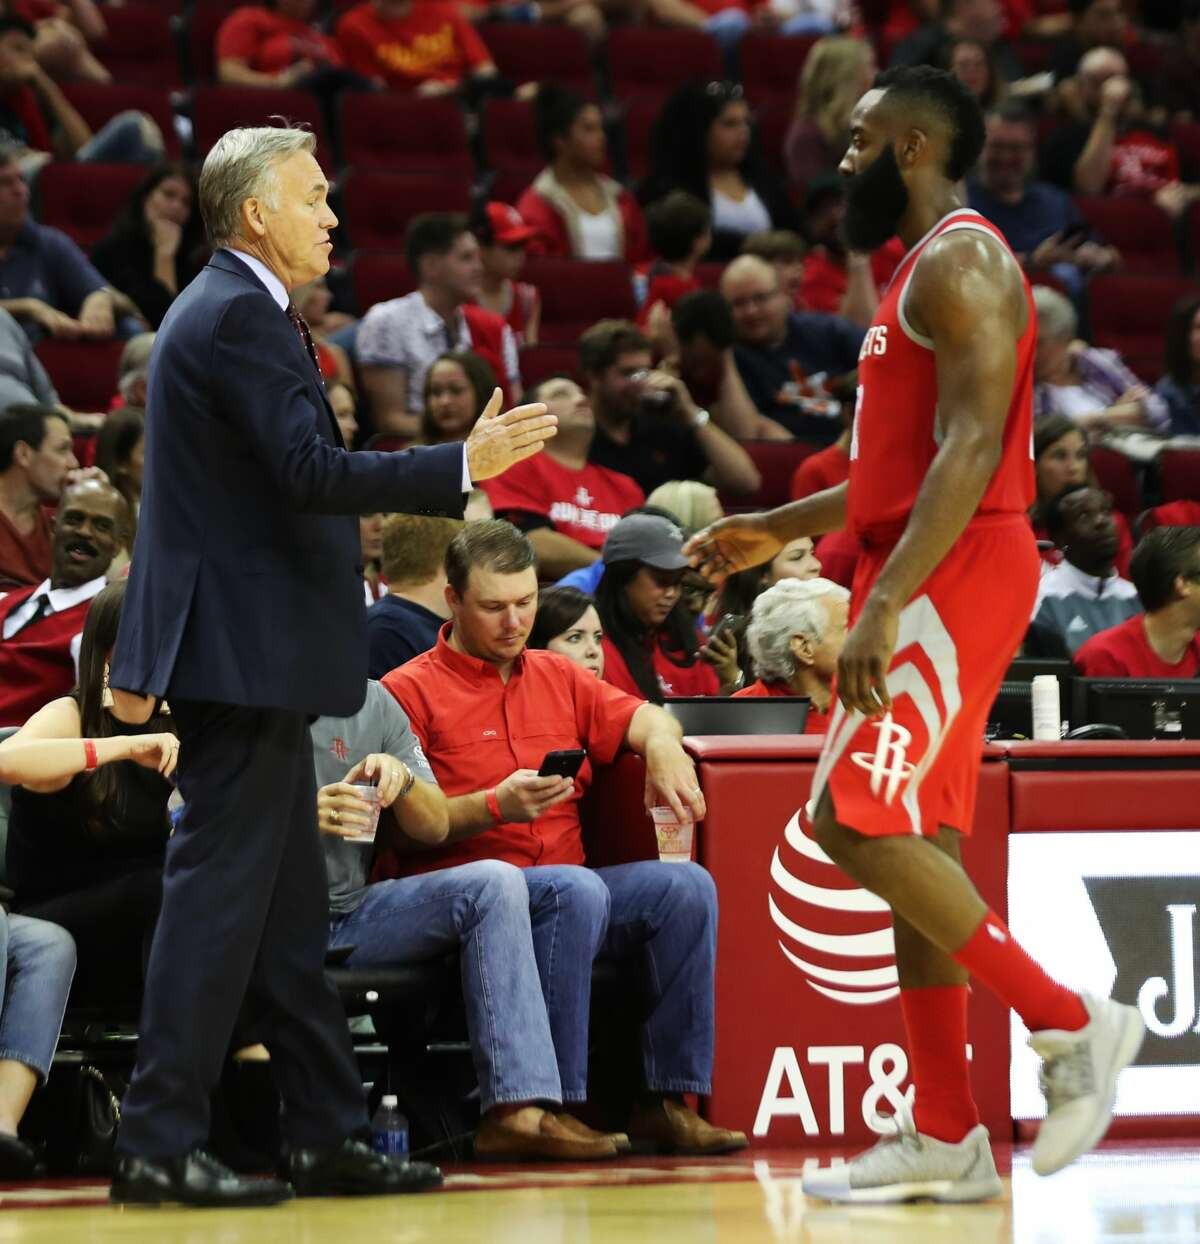 Houston Rockets head coach Mike D'Antoni extends his hand to shake Houston Rockets guard James Harden's hand during the second half of the game against the Dallas Mavericks, Saturday, Oct. 21, 2017, in Houston. The Rockets win 107-91. ( Marie D. De Jesus / Houston Chronicle )